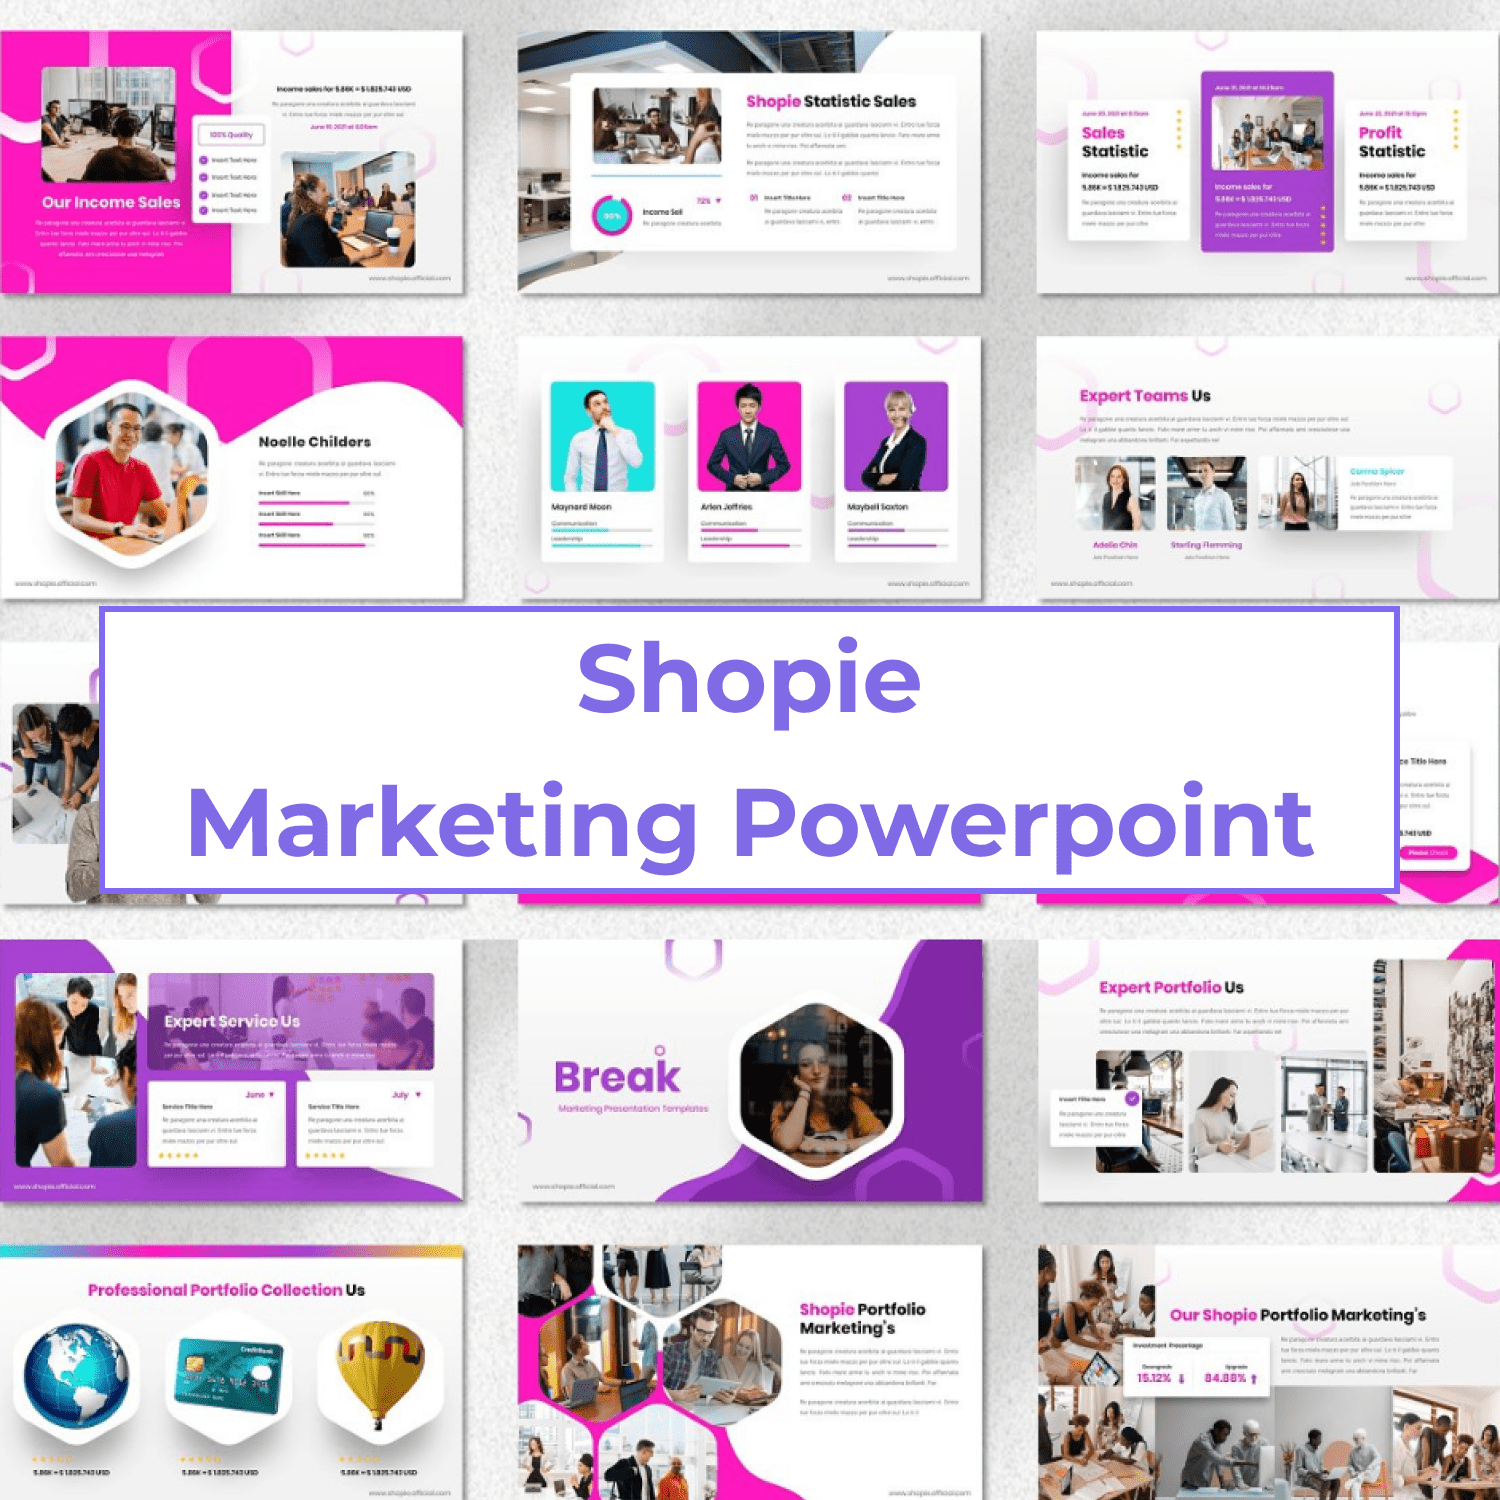 Shopie - Marketing Powerpoint cover image.